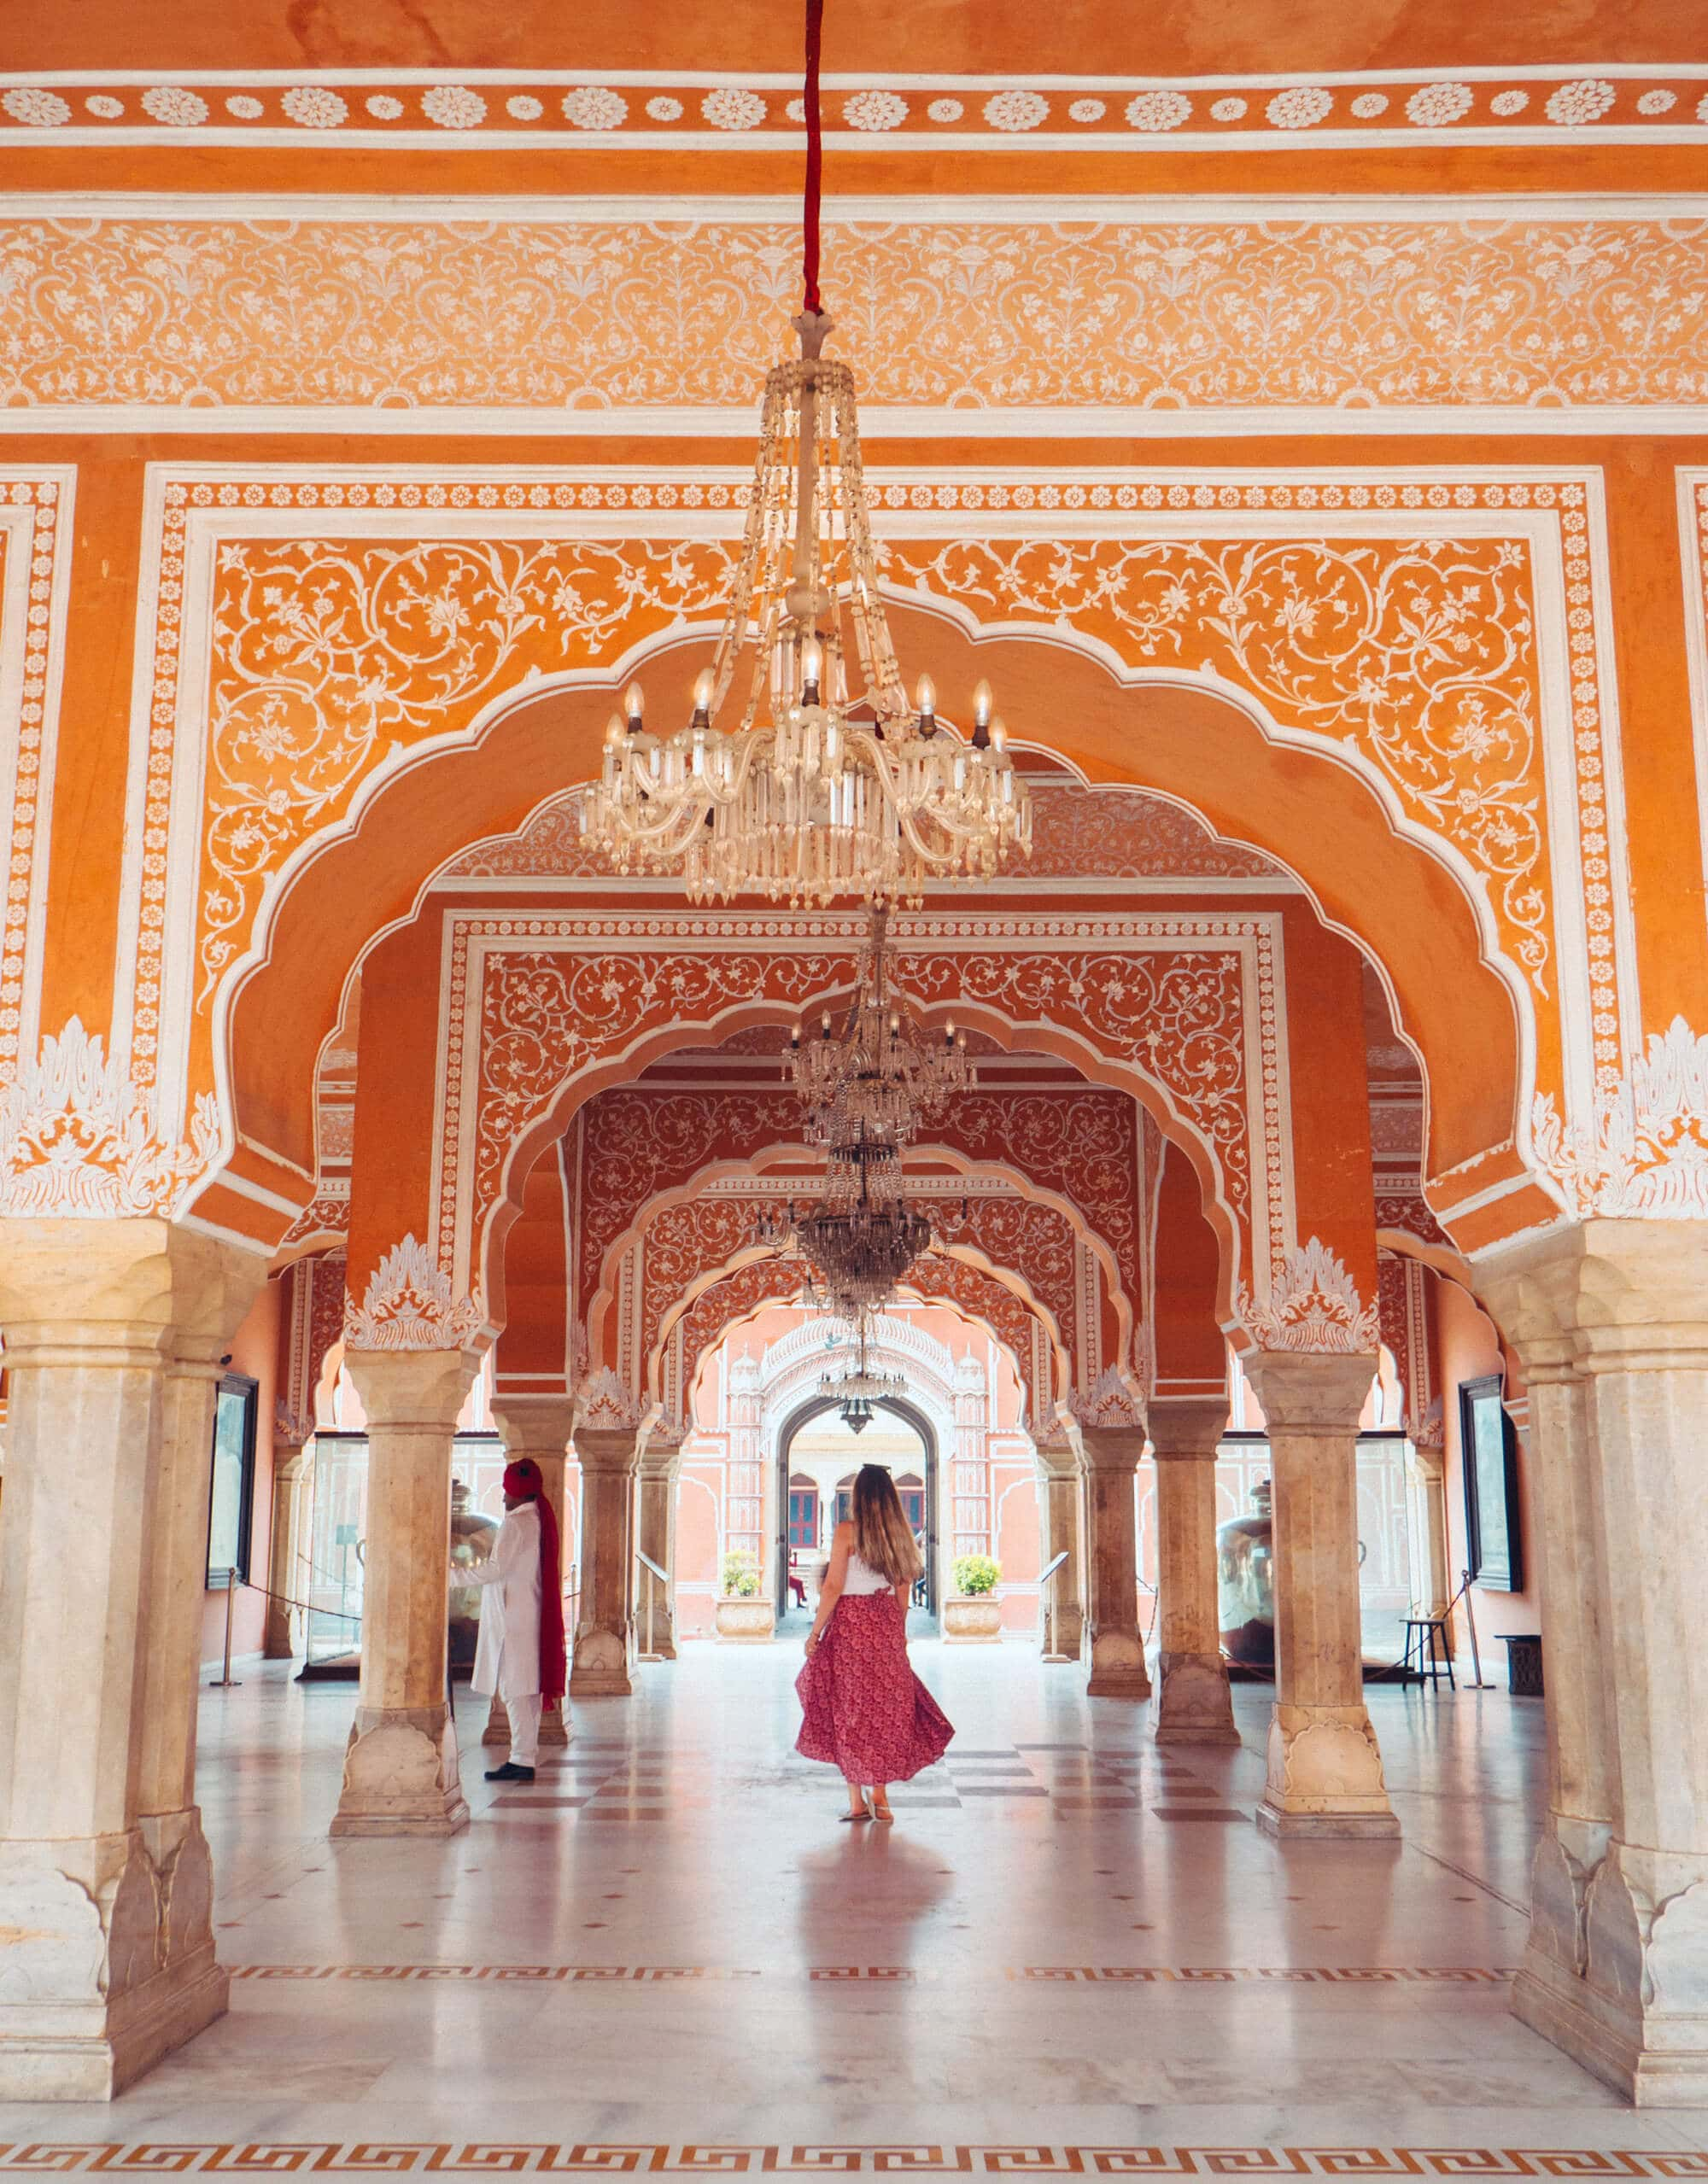 How to spend 2 days in Jaipur - City Palace